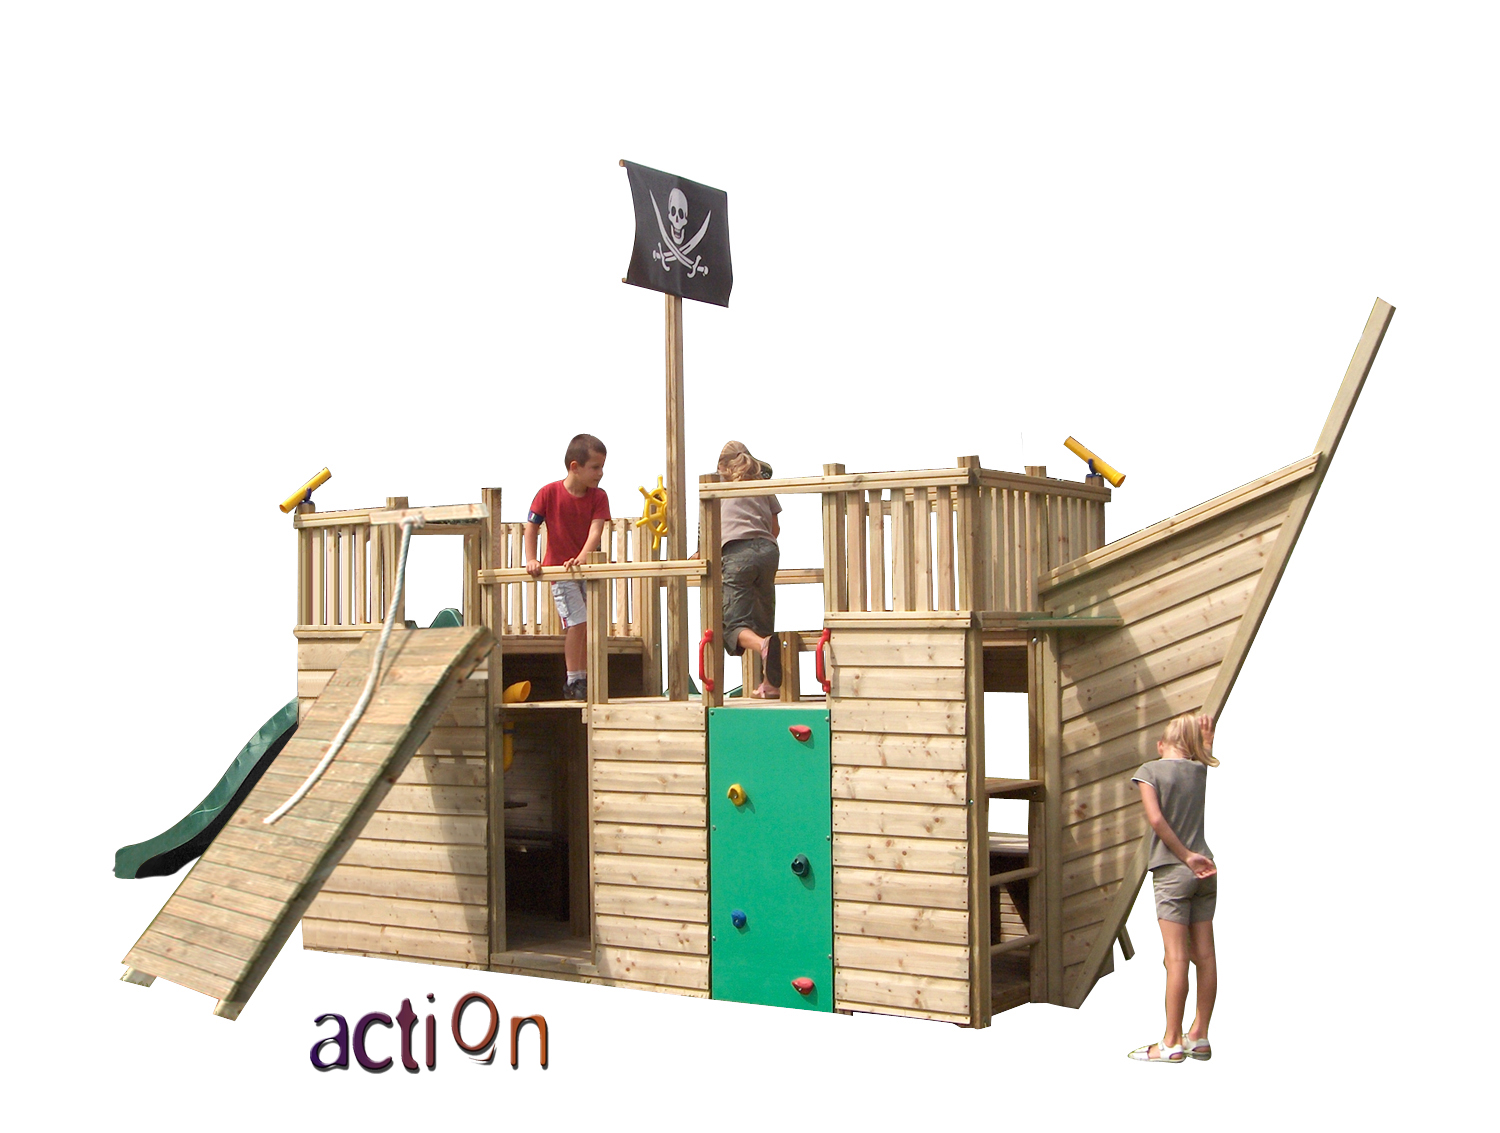 action victory wooden climbing frame ship playhouse children kids garden play ebay. Black Bedroom Furniture Sets. Home Design Ideas